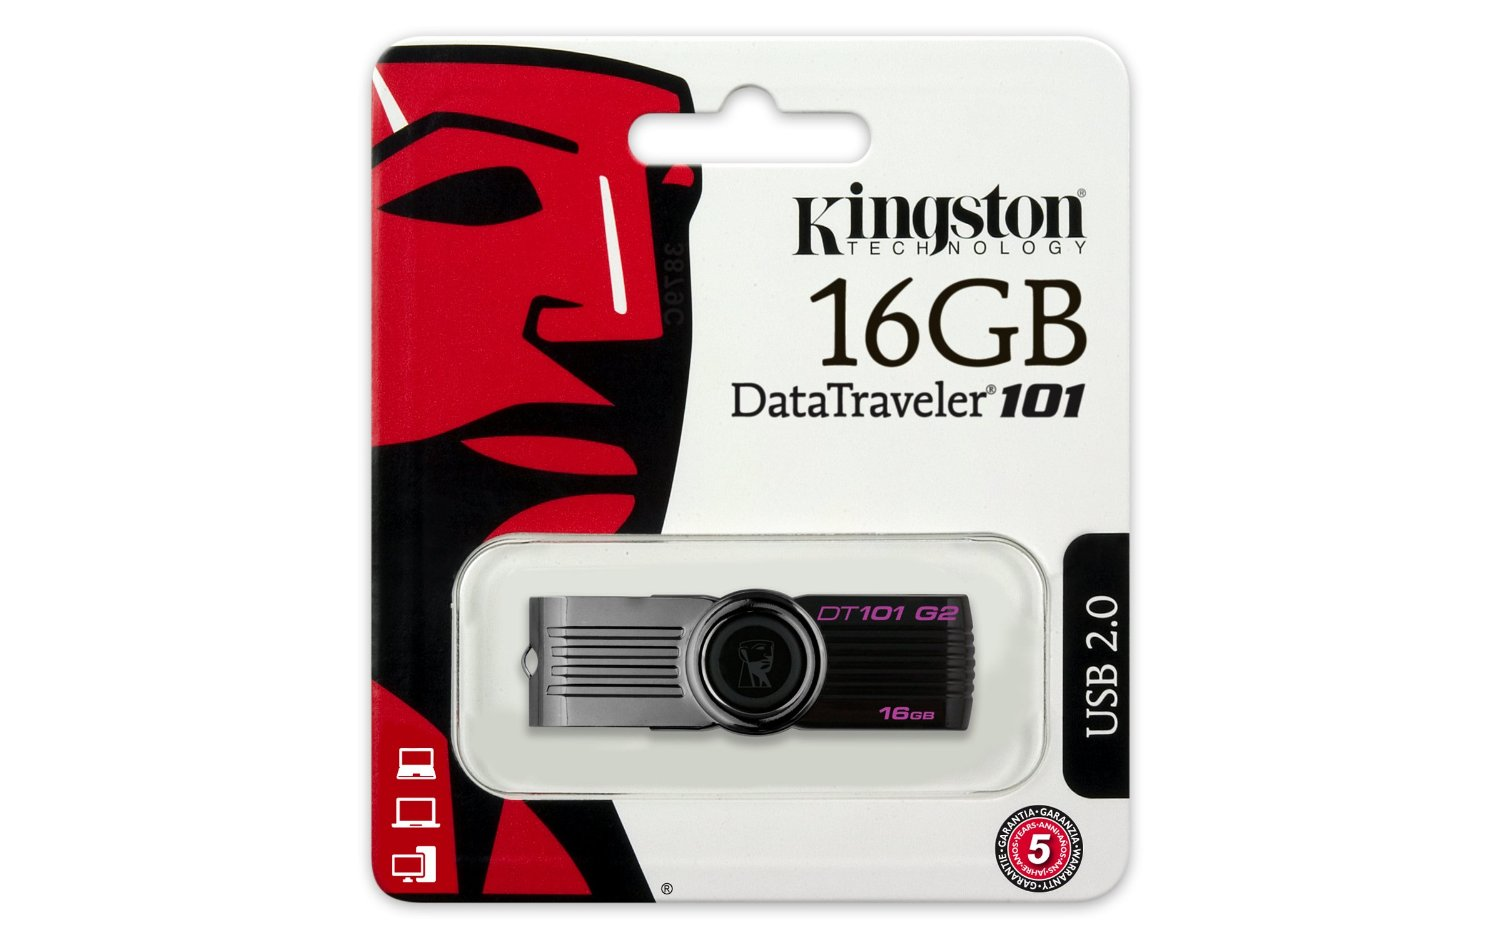 USB 16GB Kingston DataTraveler 101 Generation 2 (DT101G2/16GB)